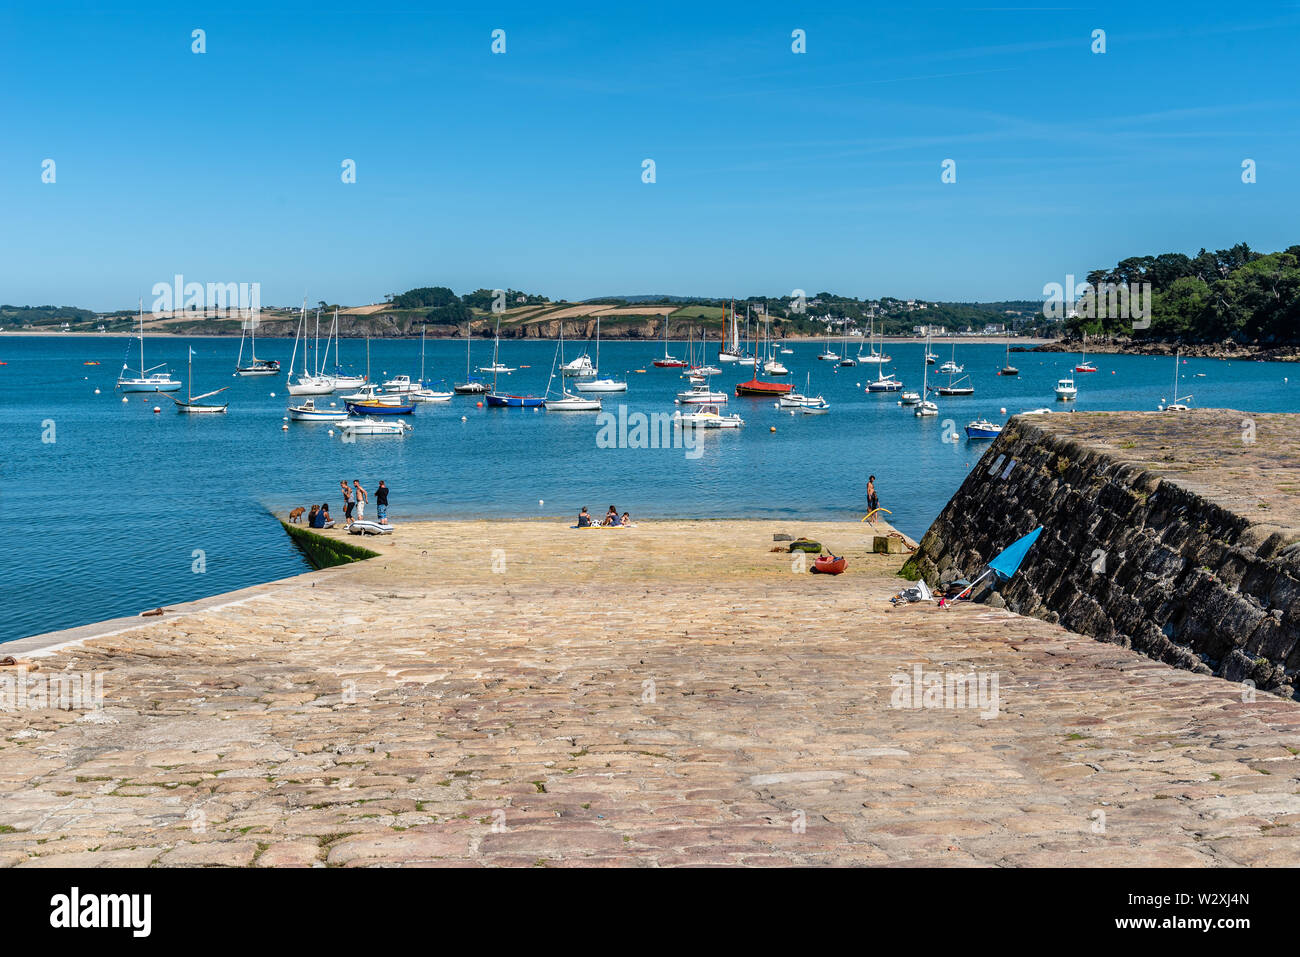 Douarnenez, France - August 2, 2018: The fishing port a sunny day of summer Stock Photo